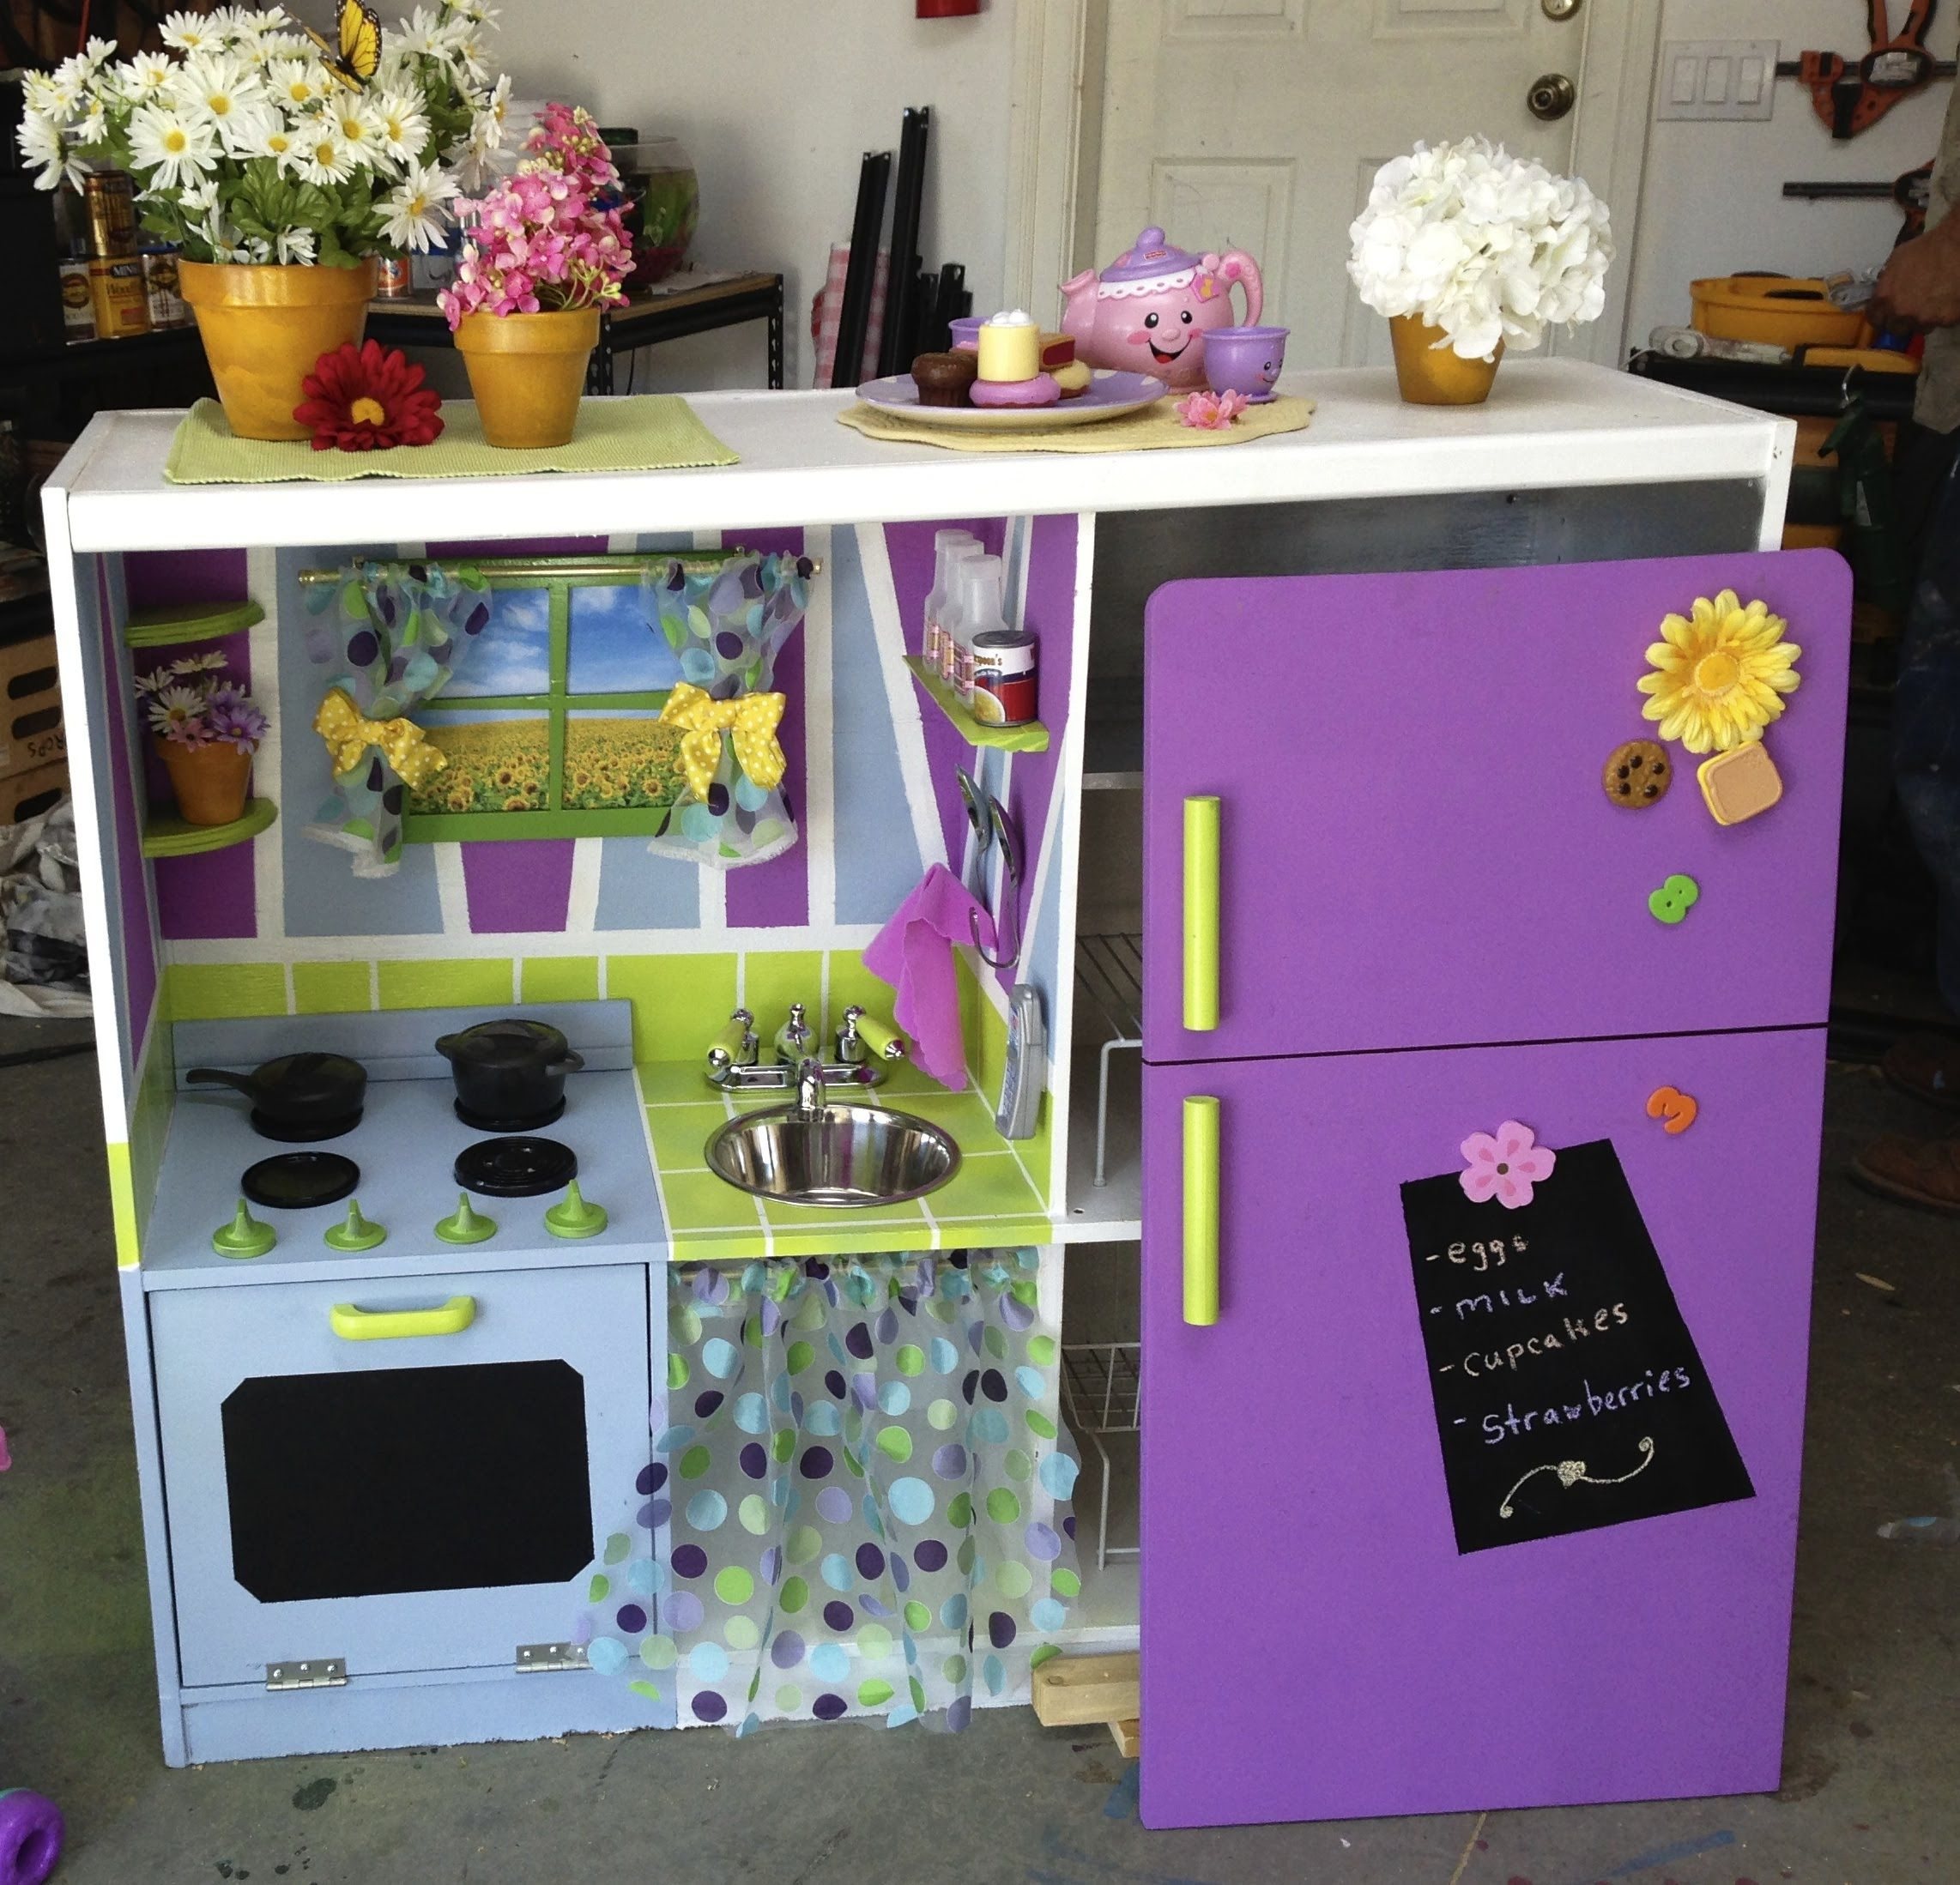 Part One Toddlers Diy Play Kitchen By Tanya Memme As Seen On Home